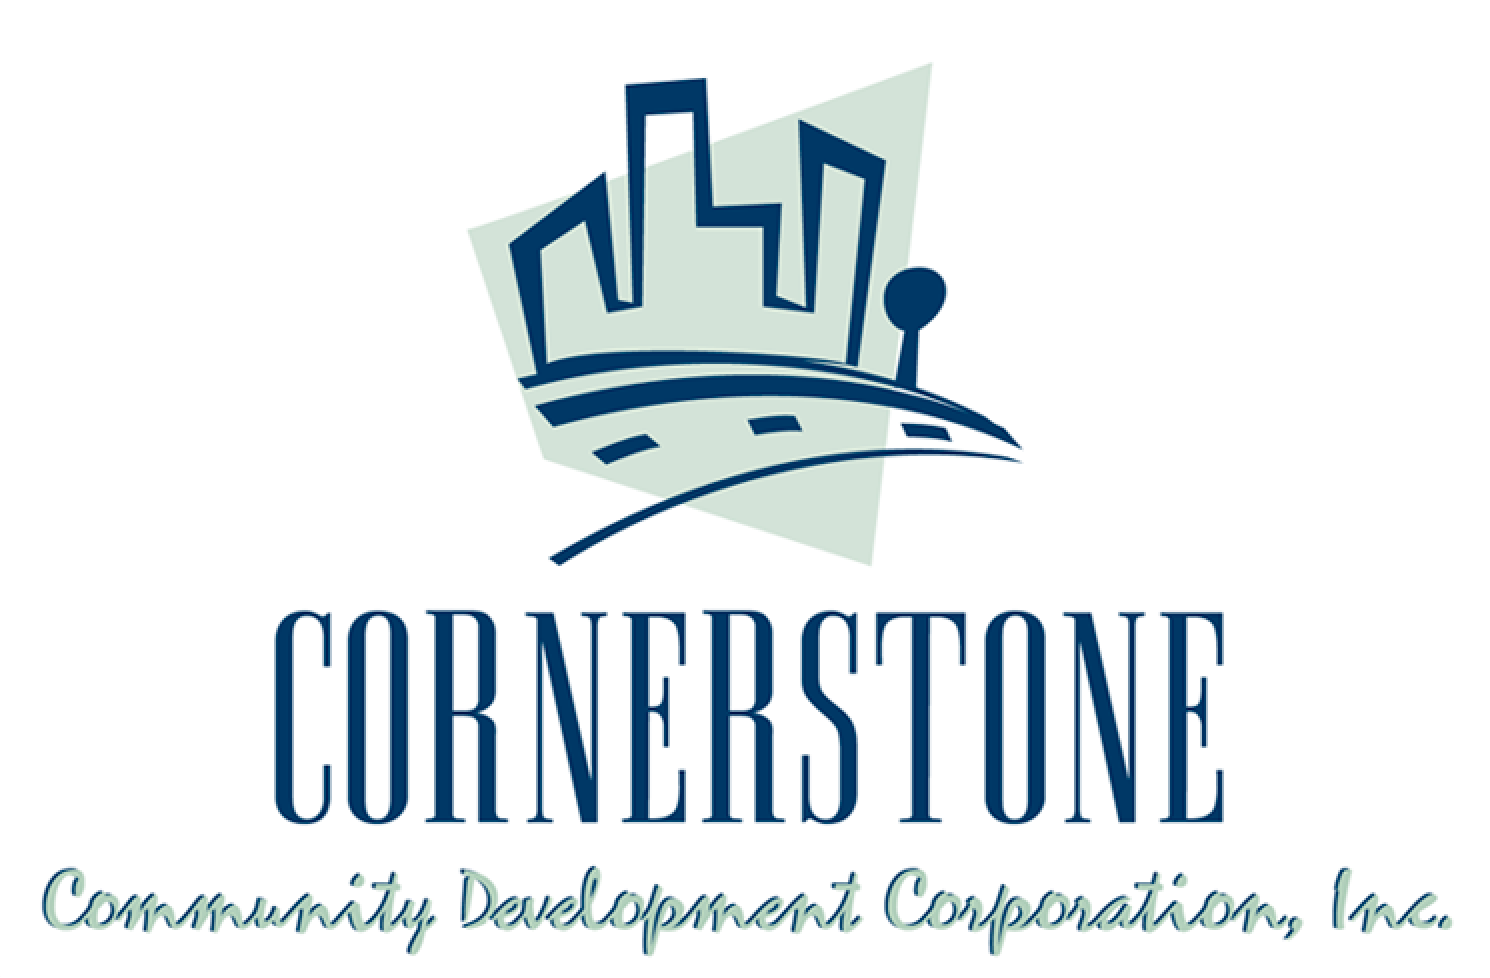 Cornerstone Community Kitchen